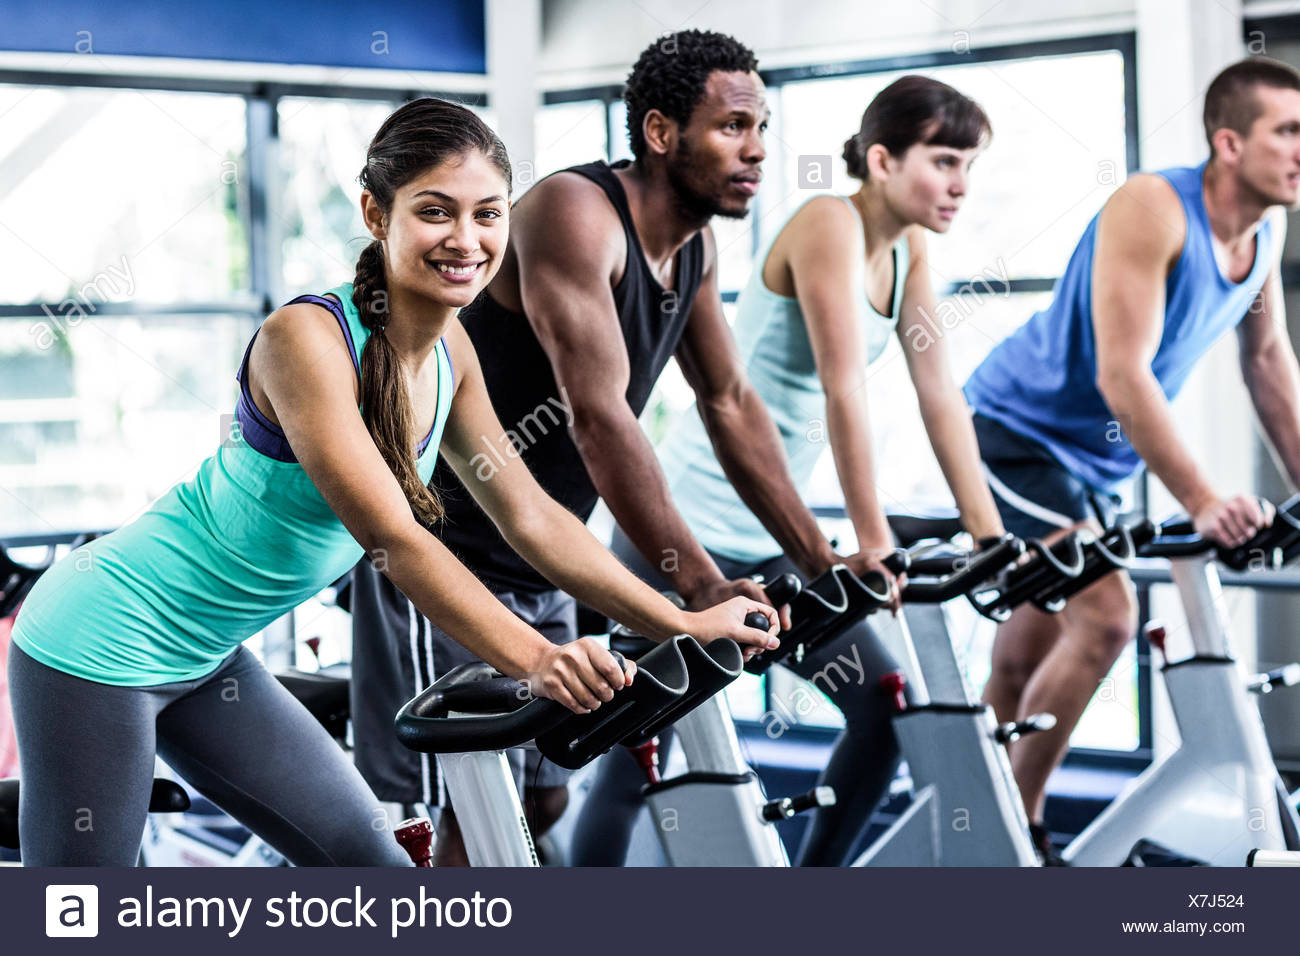 Fit people working out at spinning class - Stock Image